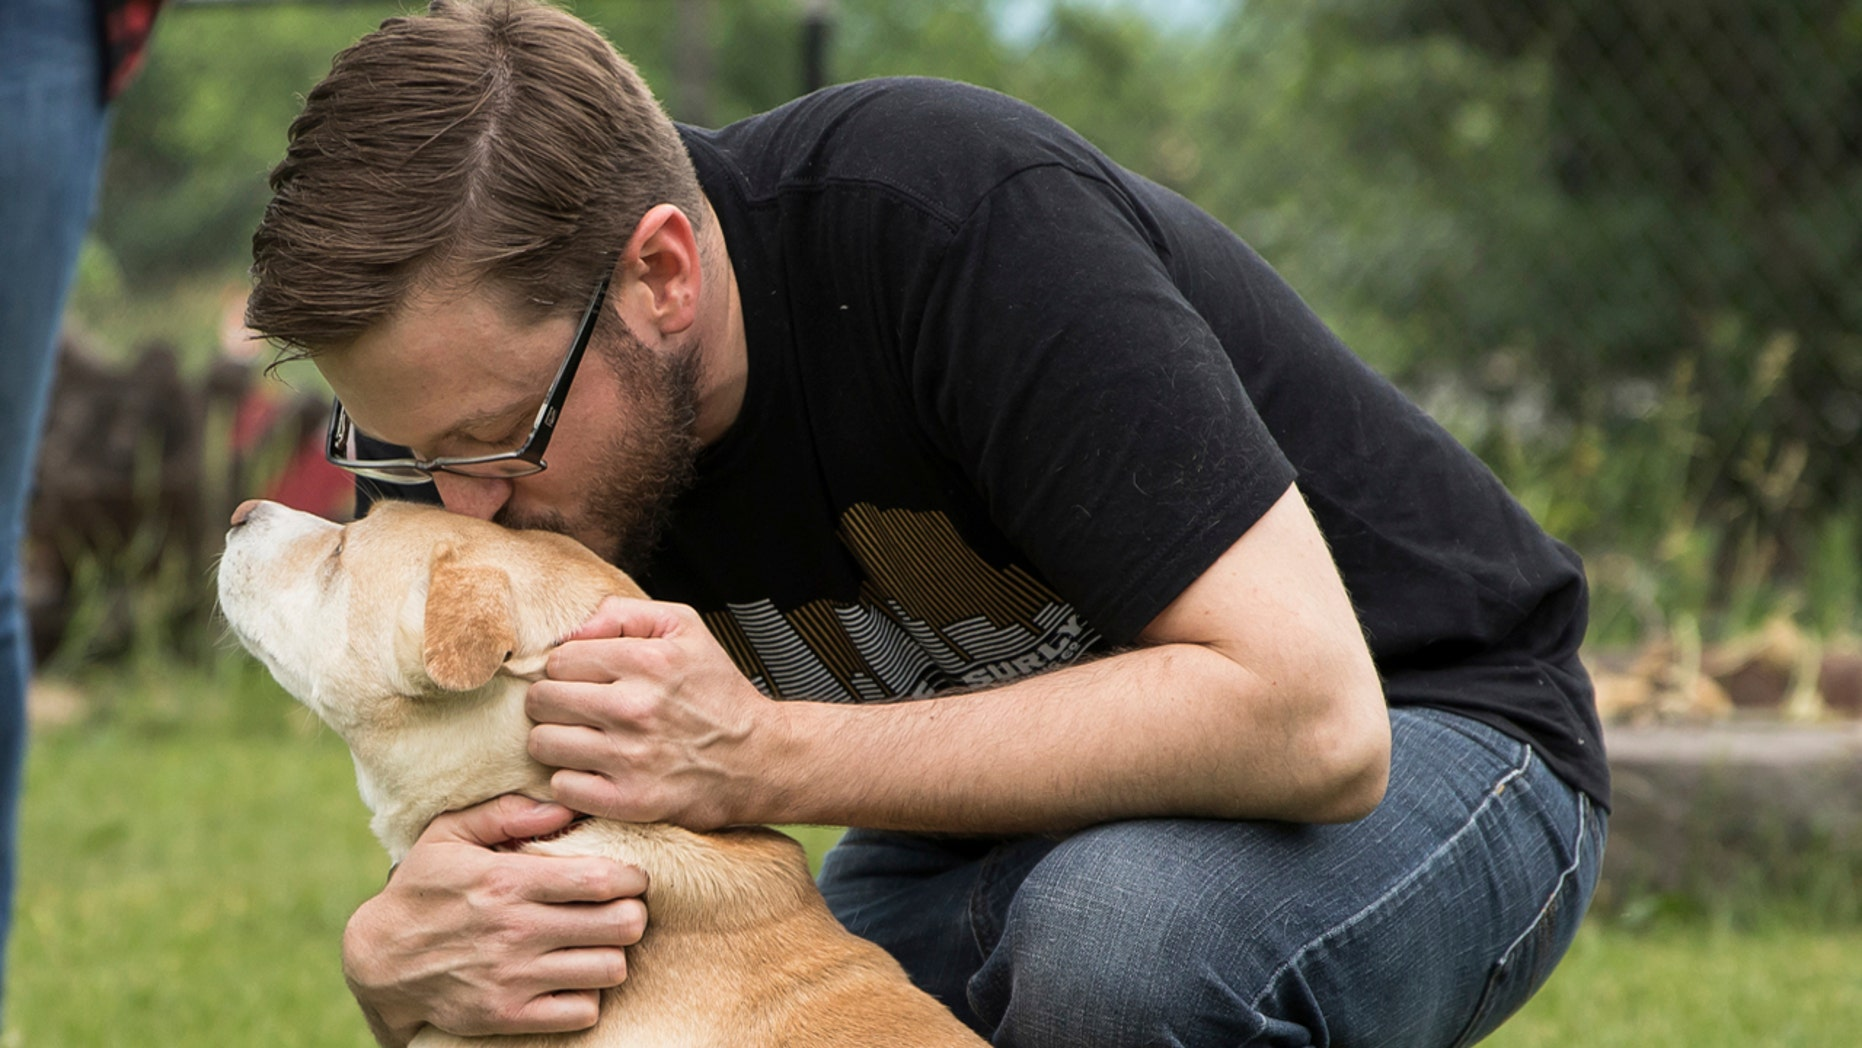 Mike Liay kisses his dog Archie's head in Minneapolis, June 18, 2018. Airlines and cruise ships are tightening restrictions on emotional support animals (ESAs).